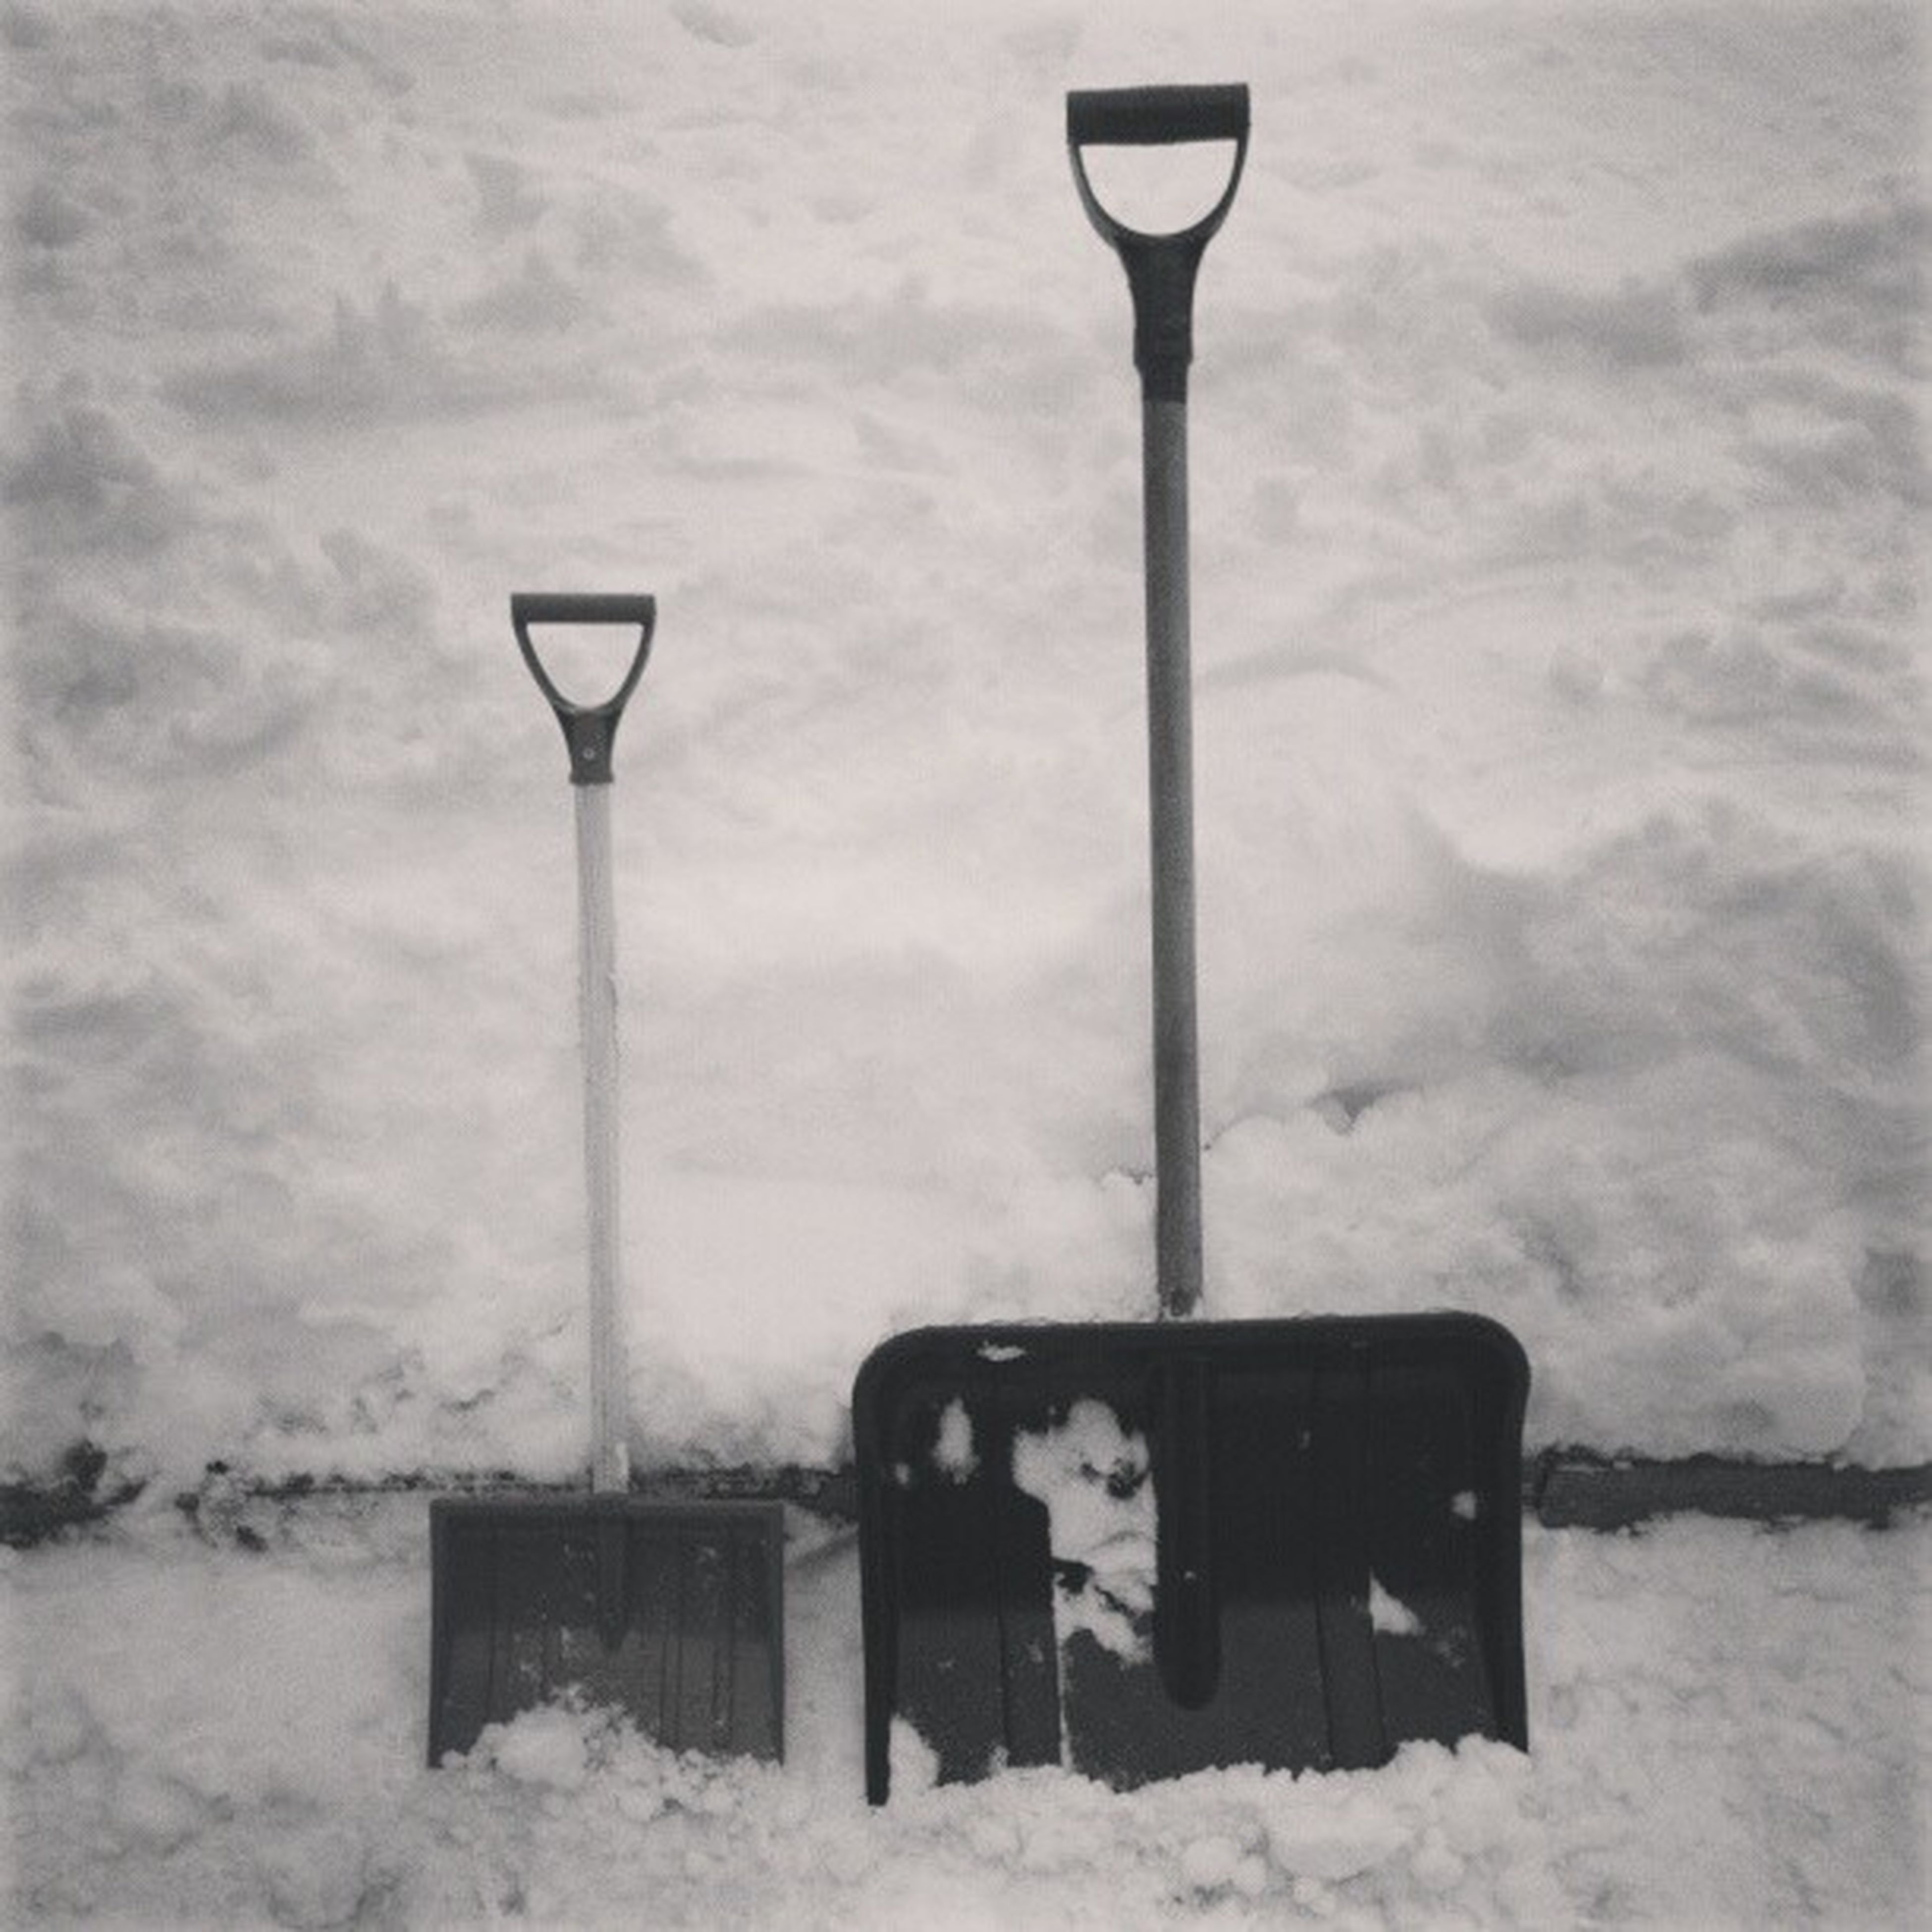 snow, winter, cold temperature, weather, season, sky, street light, covering, white color, nature, day, no people, communication, outdoors, lighting equipment, pole, cloud - sky, tranquility, field, built structure